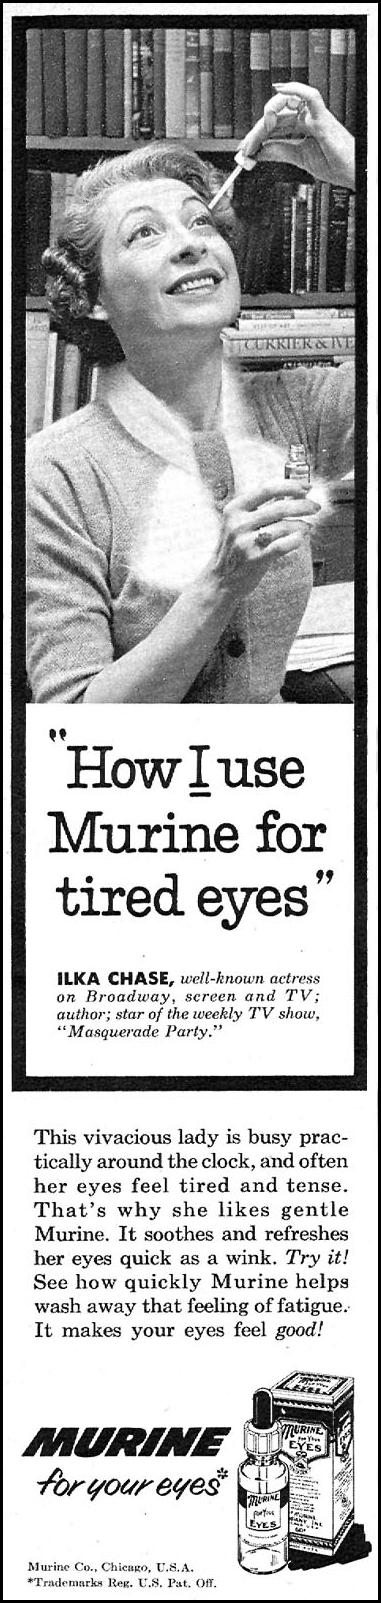 MURINE EYE DROPS FAMILY CIRCLE 01/01/1956 p. 72